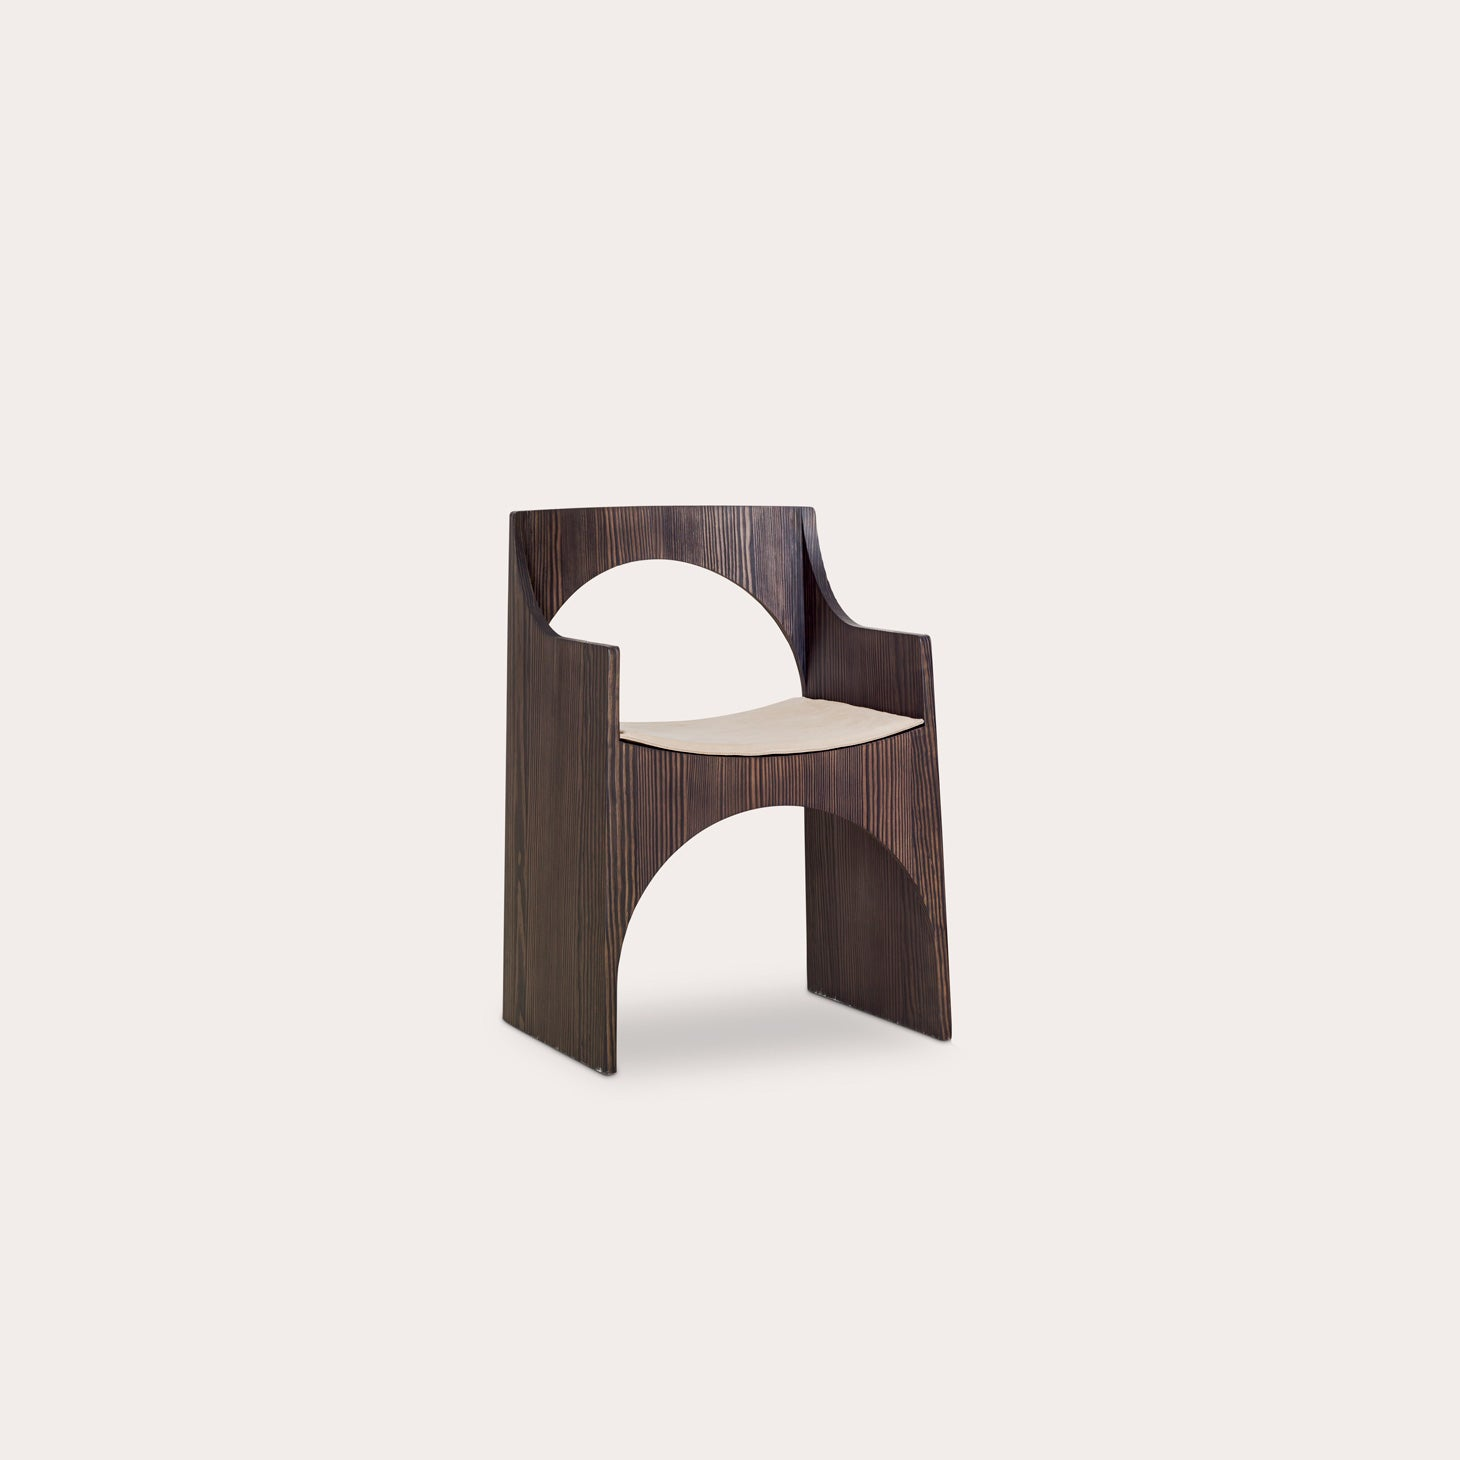 CLE Chair Seating Christophe Delcourt Designer Furniture Sku: 008-120-10089